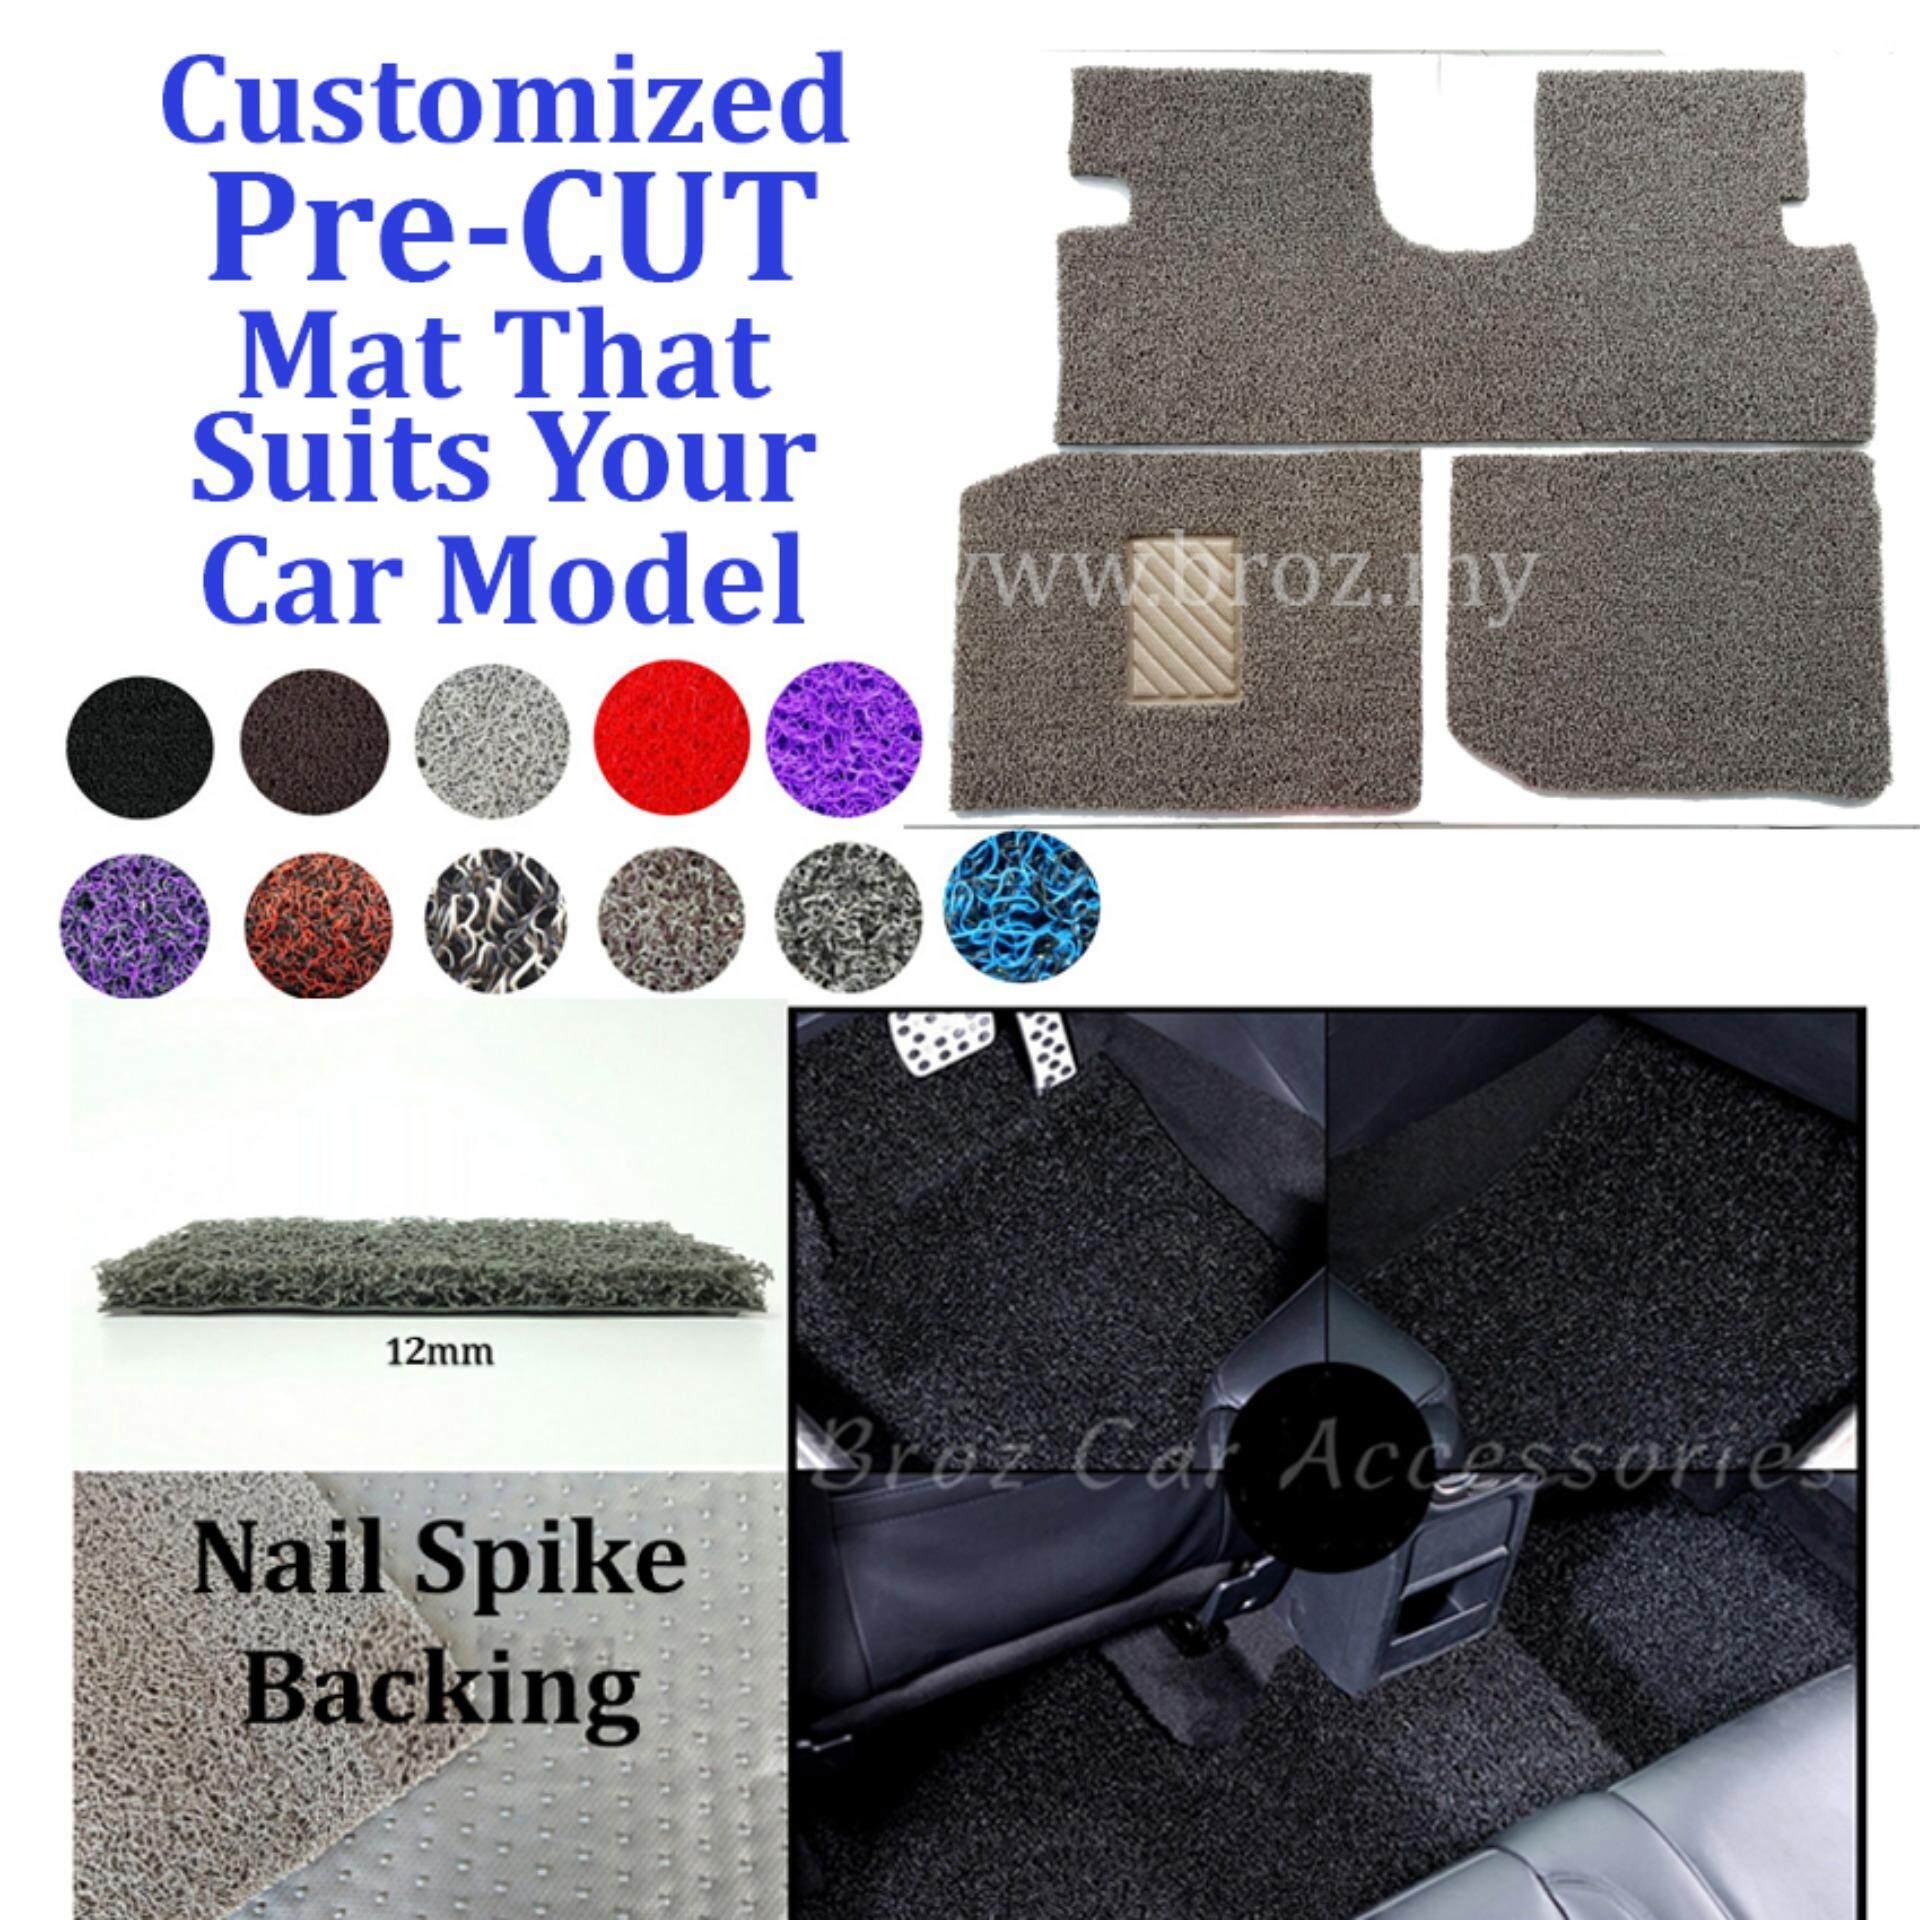 Broz Mercedes E-200 12MM Customized PRE CUT PVC Coil Floor Mat with Driver Rubber Pad Anti Slip Carpet Nail Spike Backing - Brown Beige